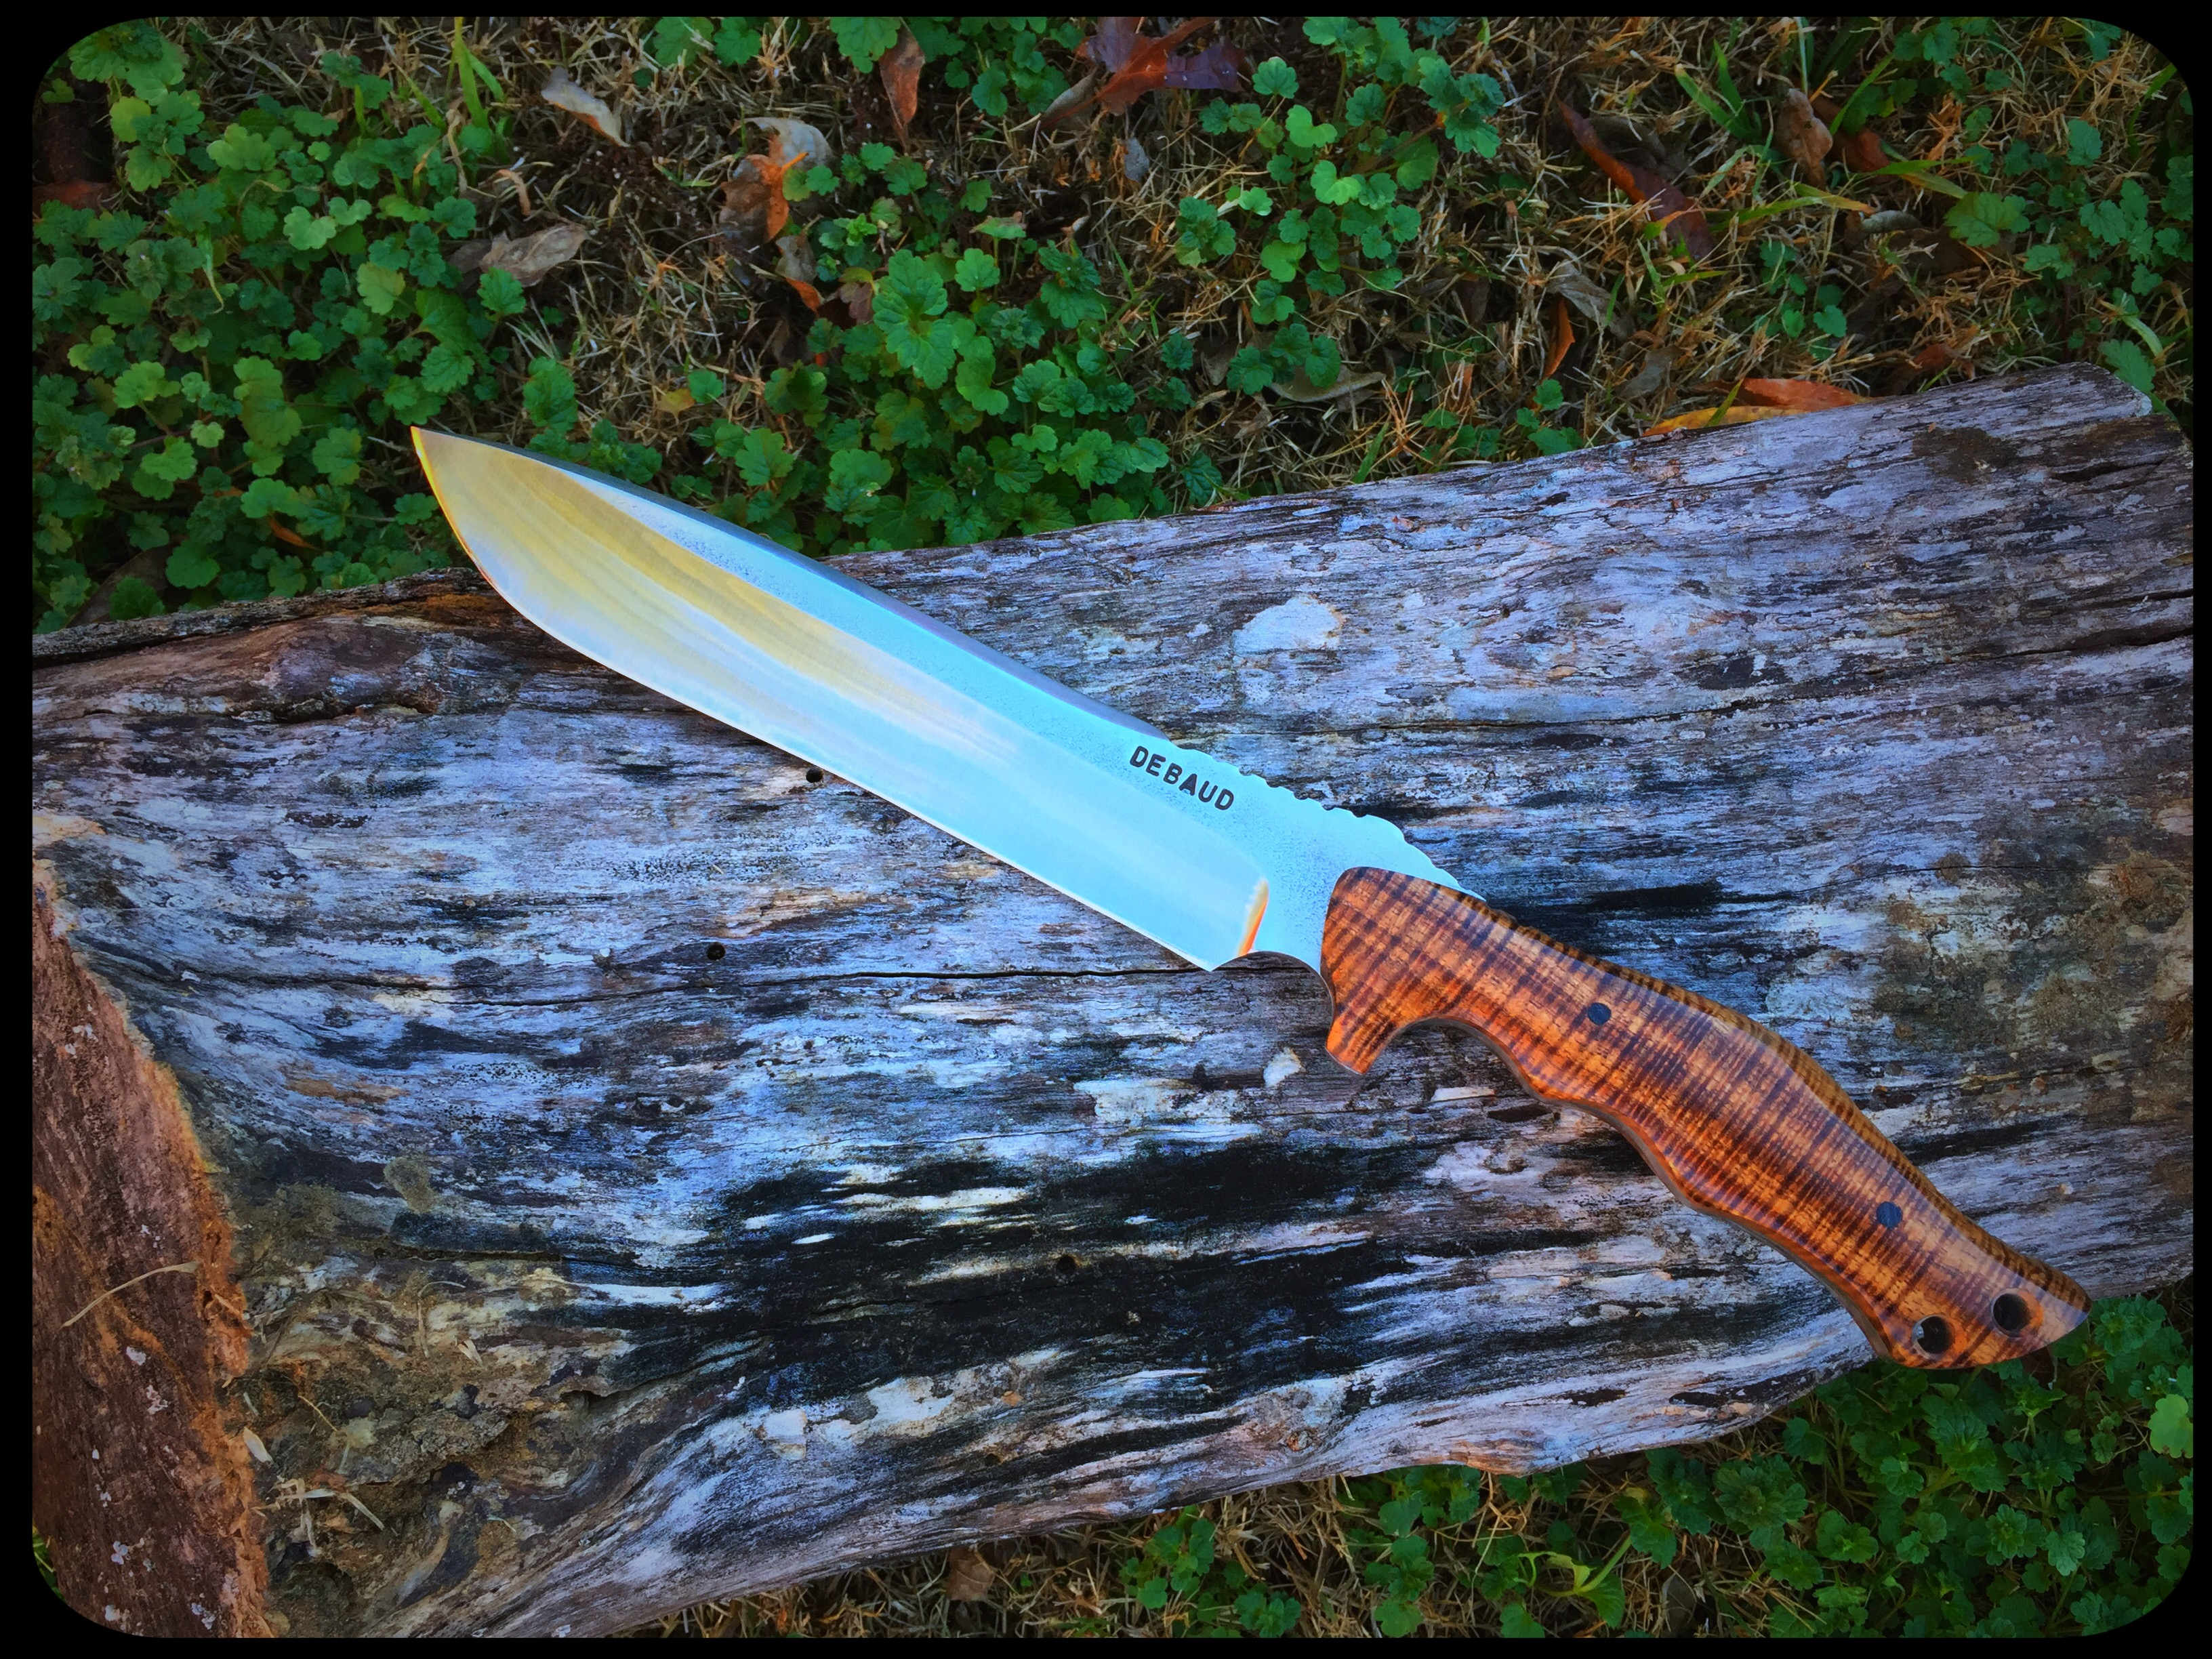 Custom PATHFINDER CAMP MODEL KNIFE